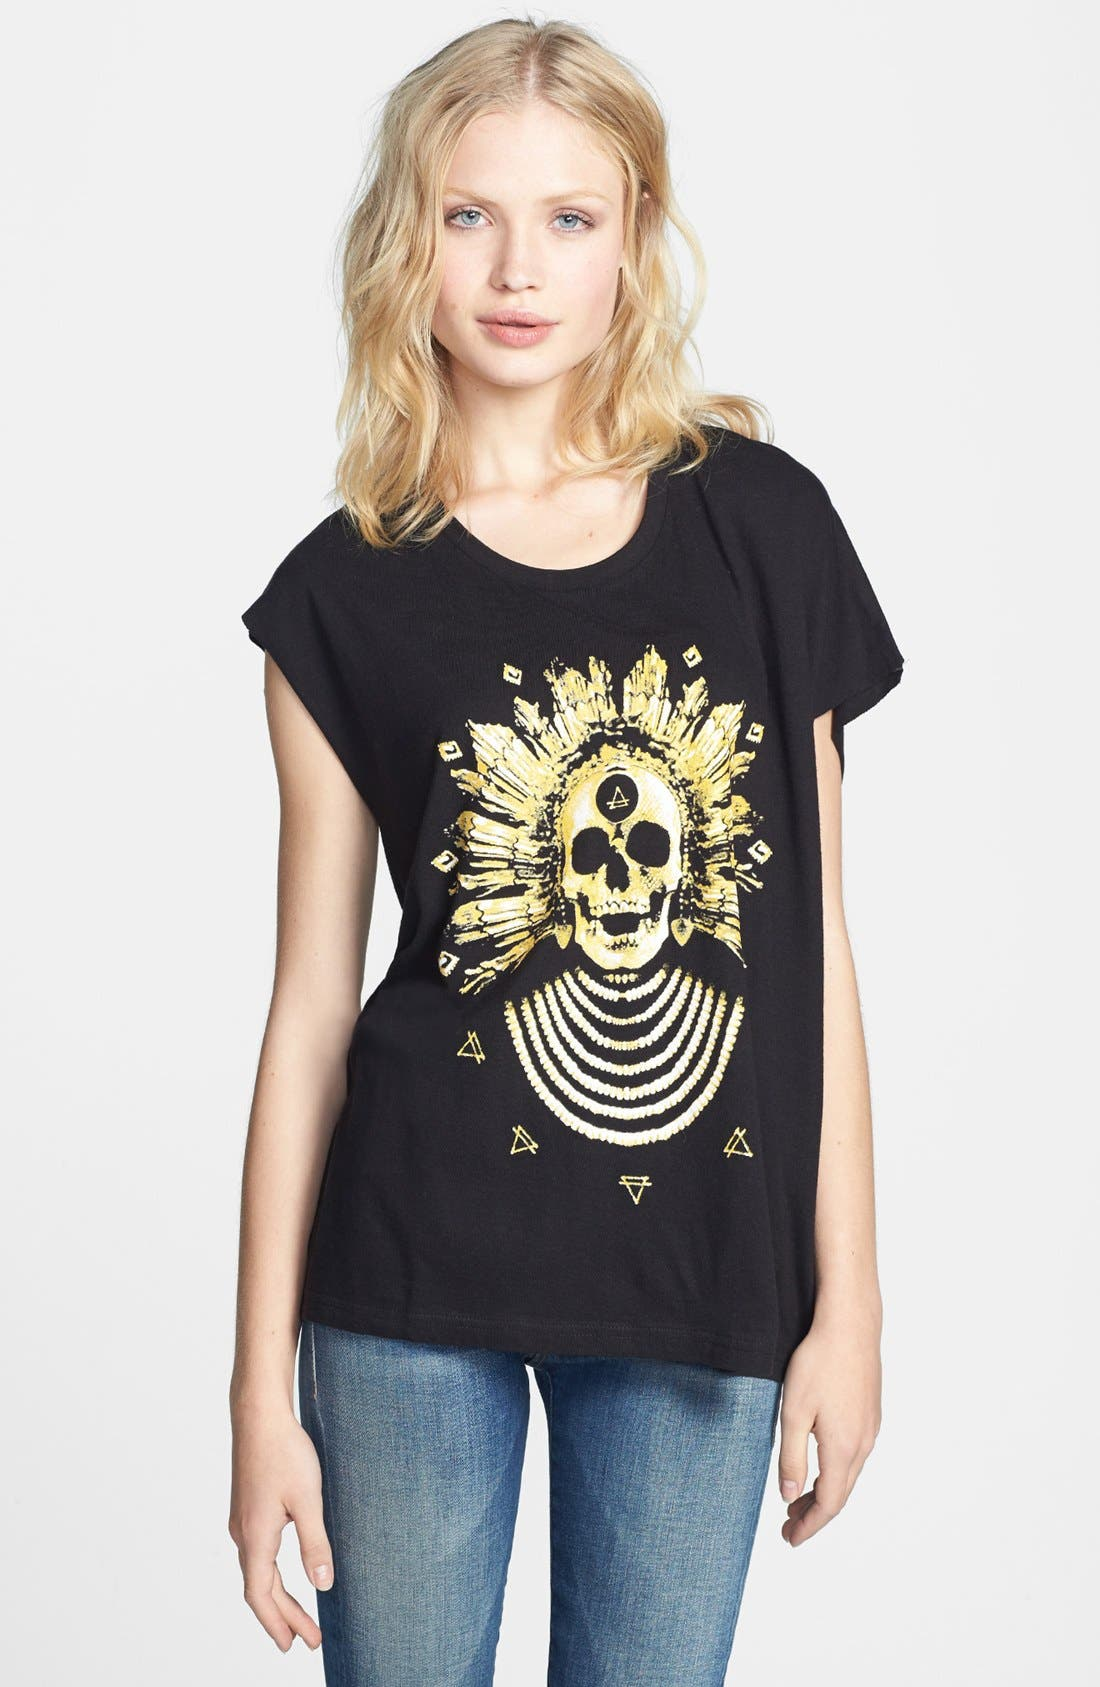 Alternate Image 1 Selected - ELEVENPARIS 'Midelo' Skull Print Asymmetrical Tee